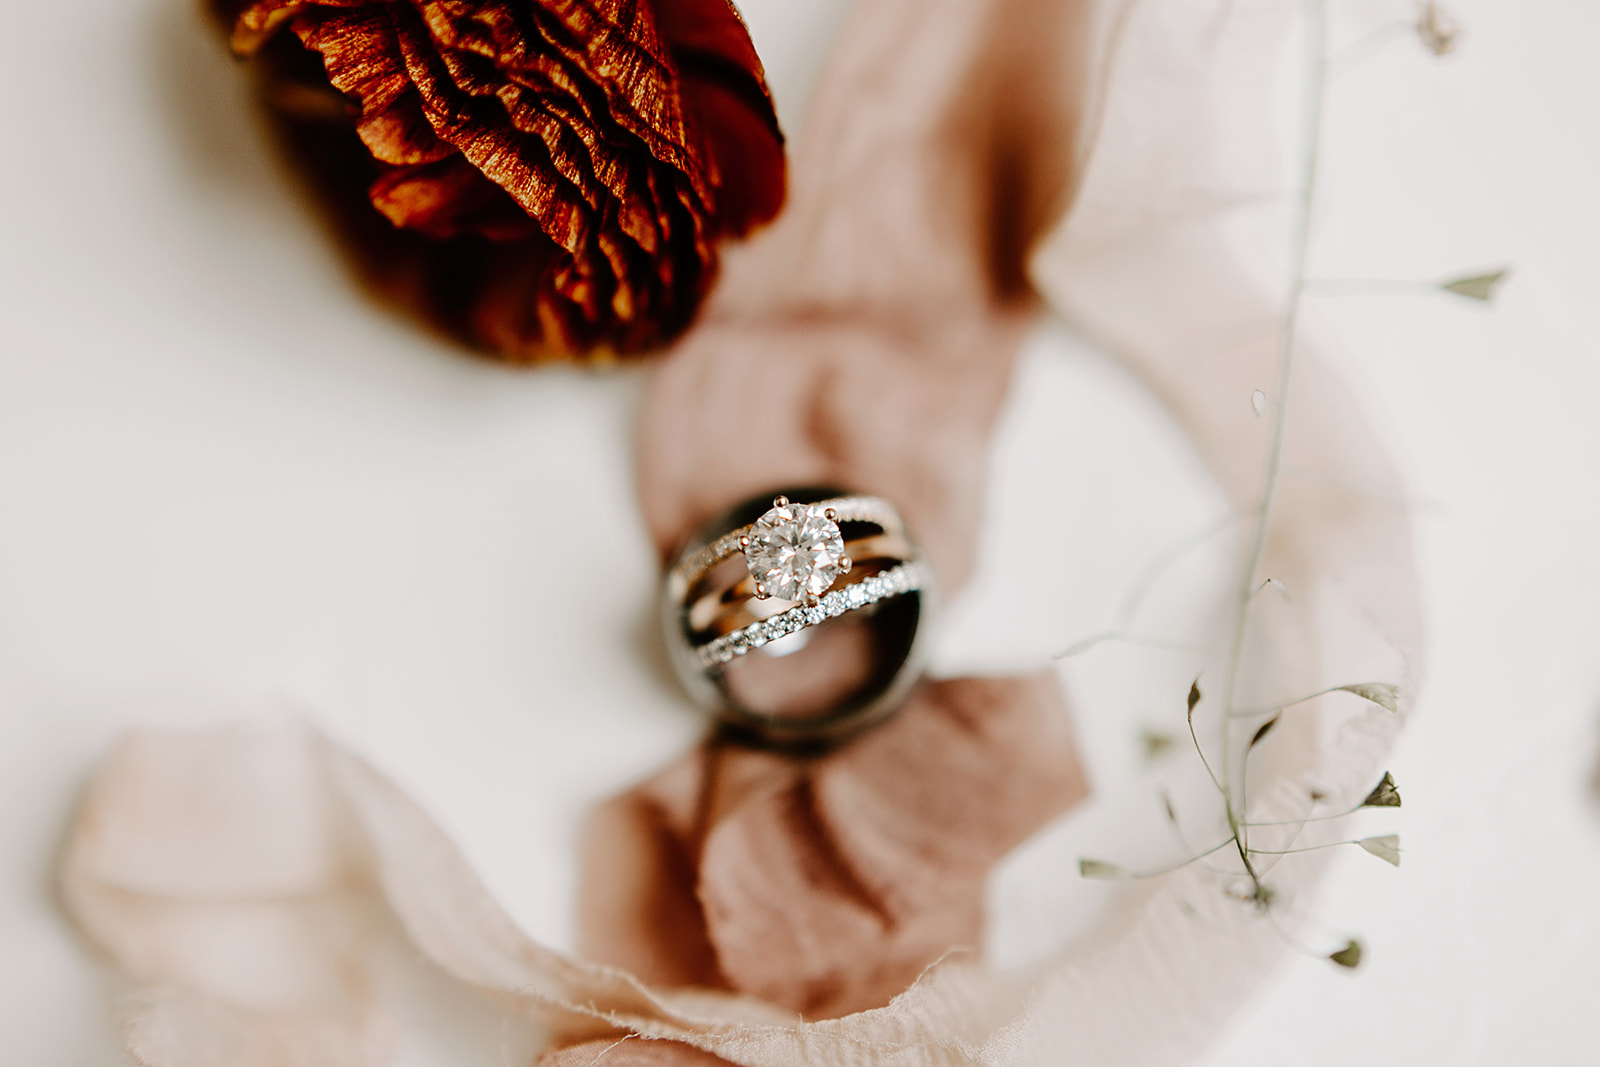 Wedding details inspiration including paper good and invites, wedding rings, wedding notes and jewellery | Photography by Emily Elyse Wehner, indiana based wedding photographer